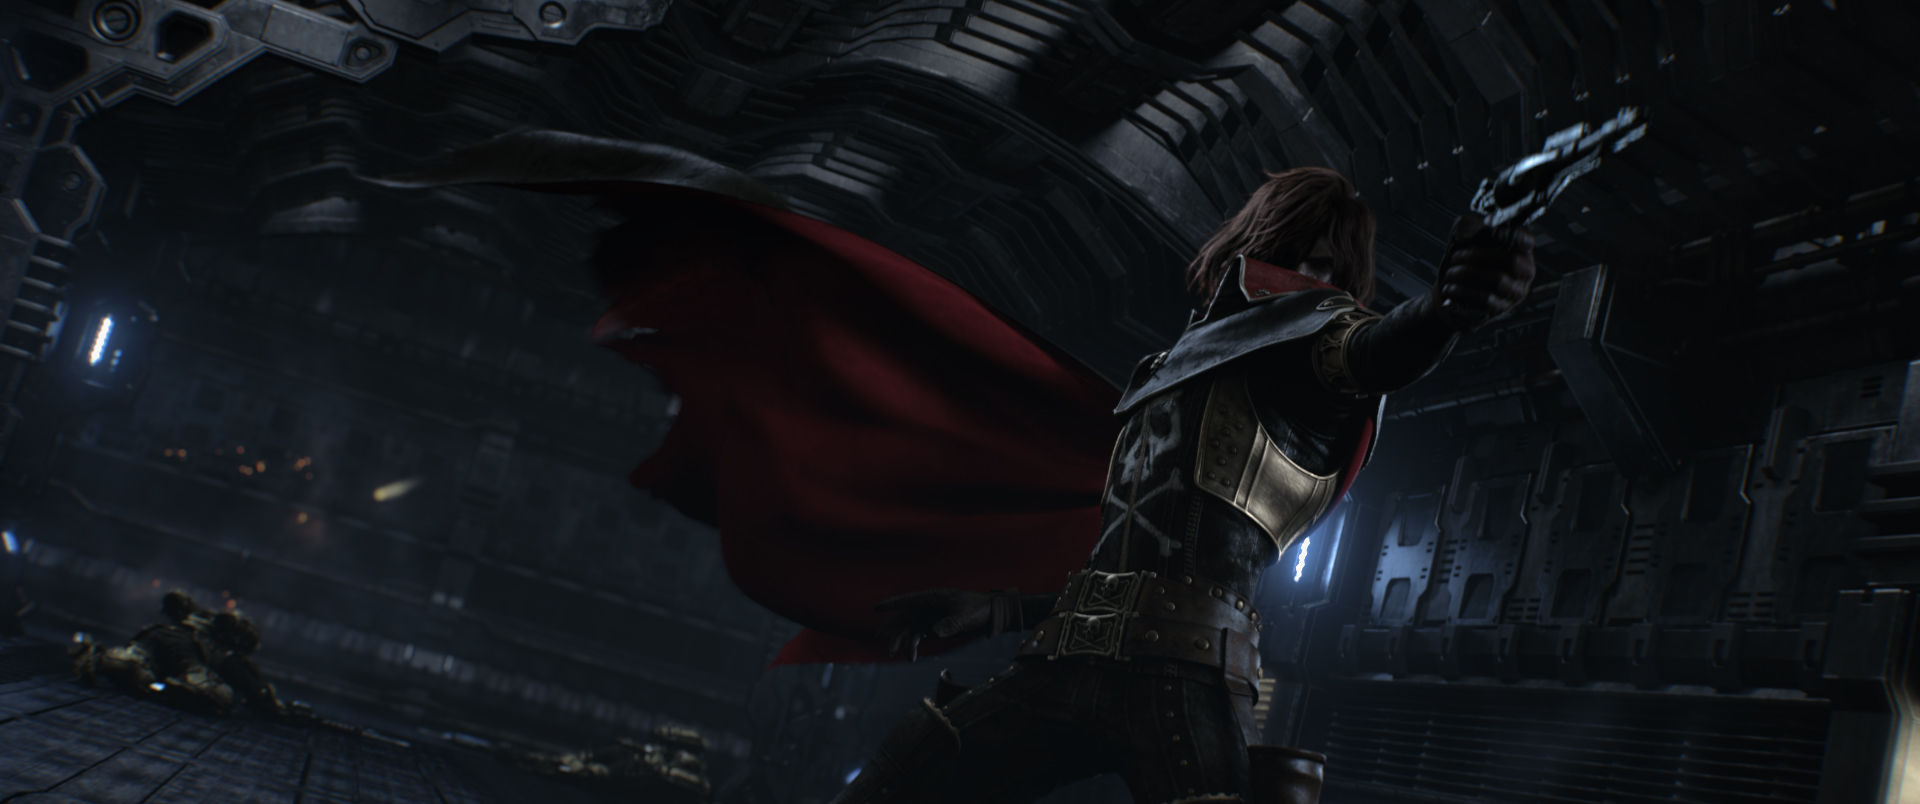 Space_Pirate_Captain_Harlock_Szenenbilder_03.72dpi